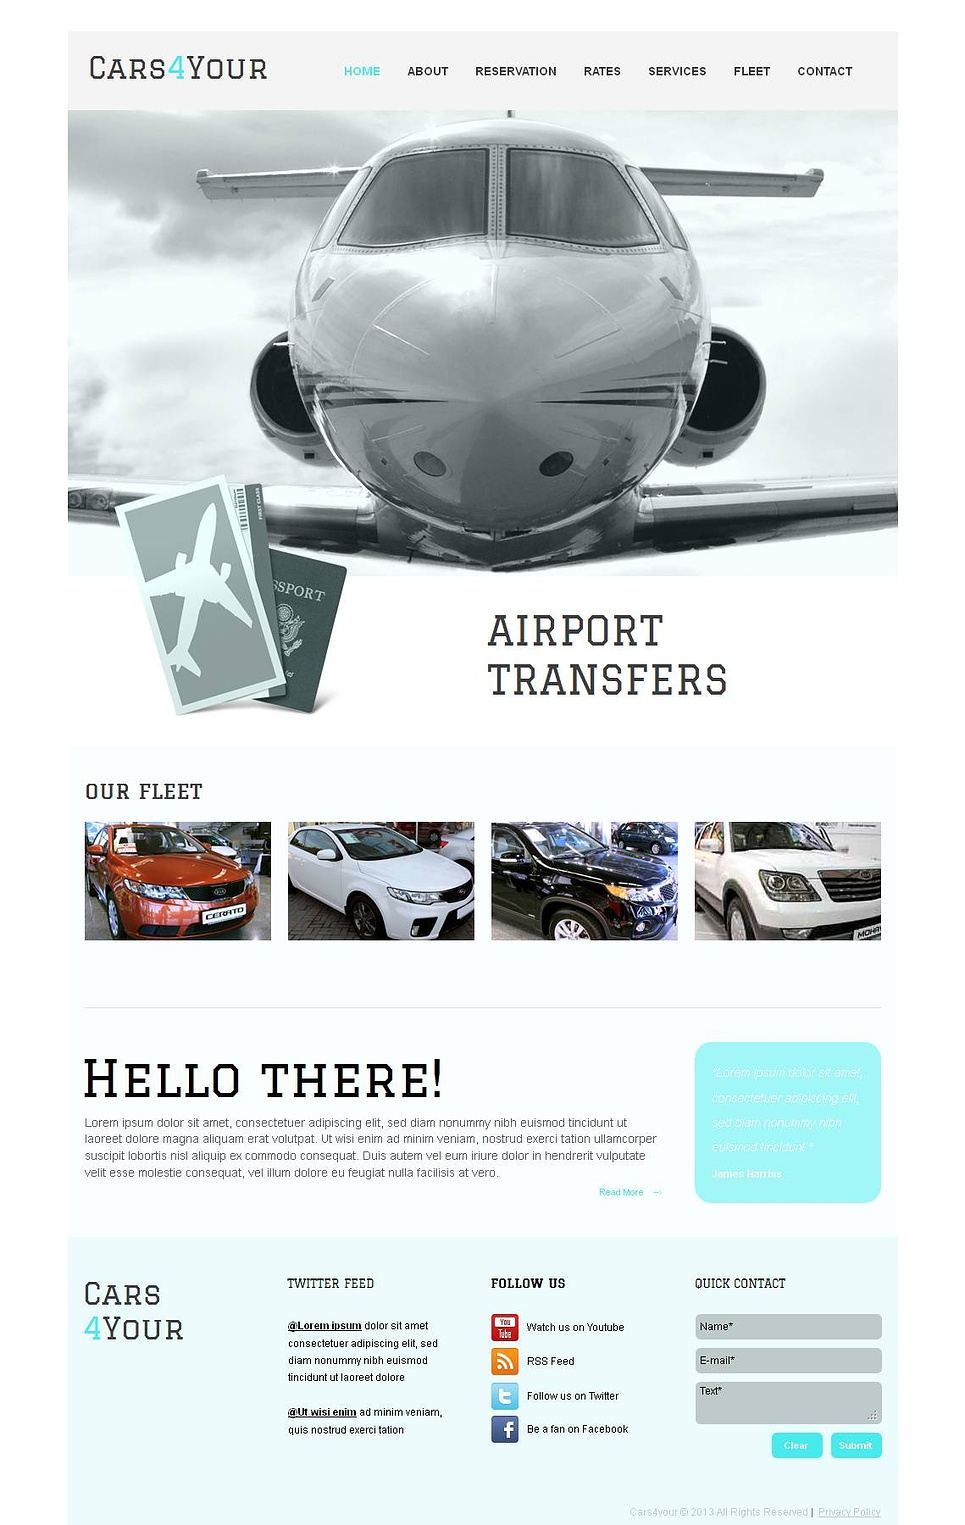 Car and Limo Services Website Template with Large Footer - image